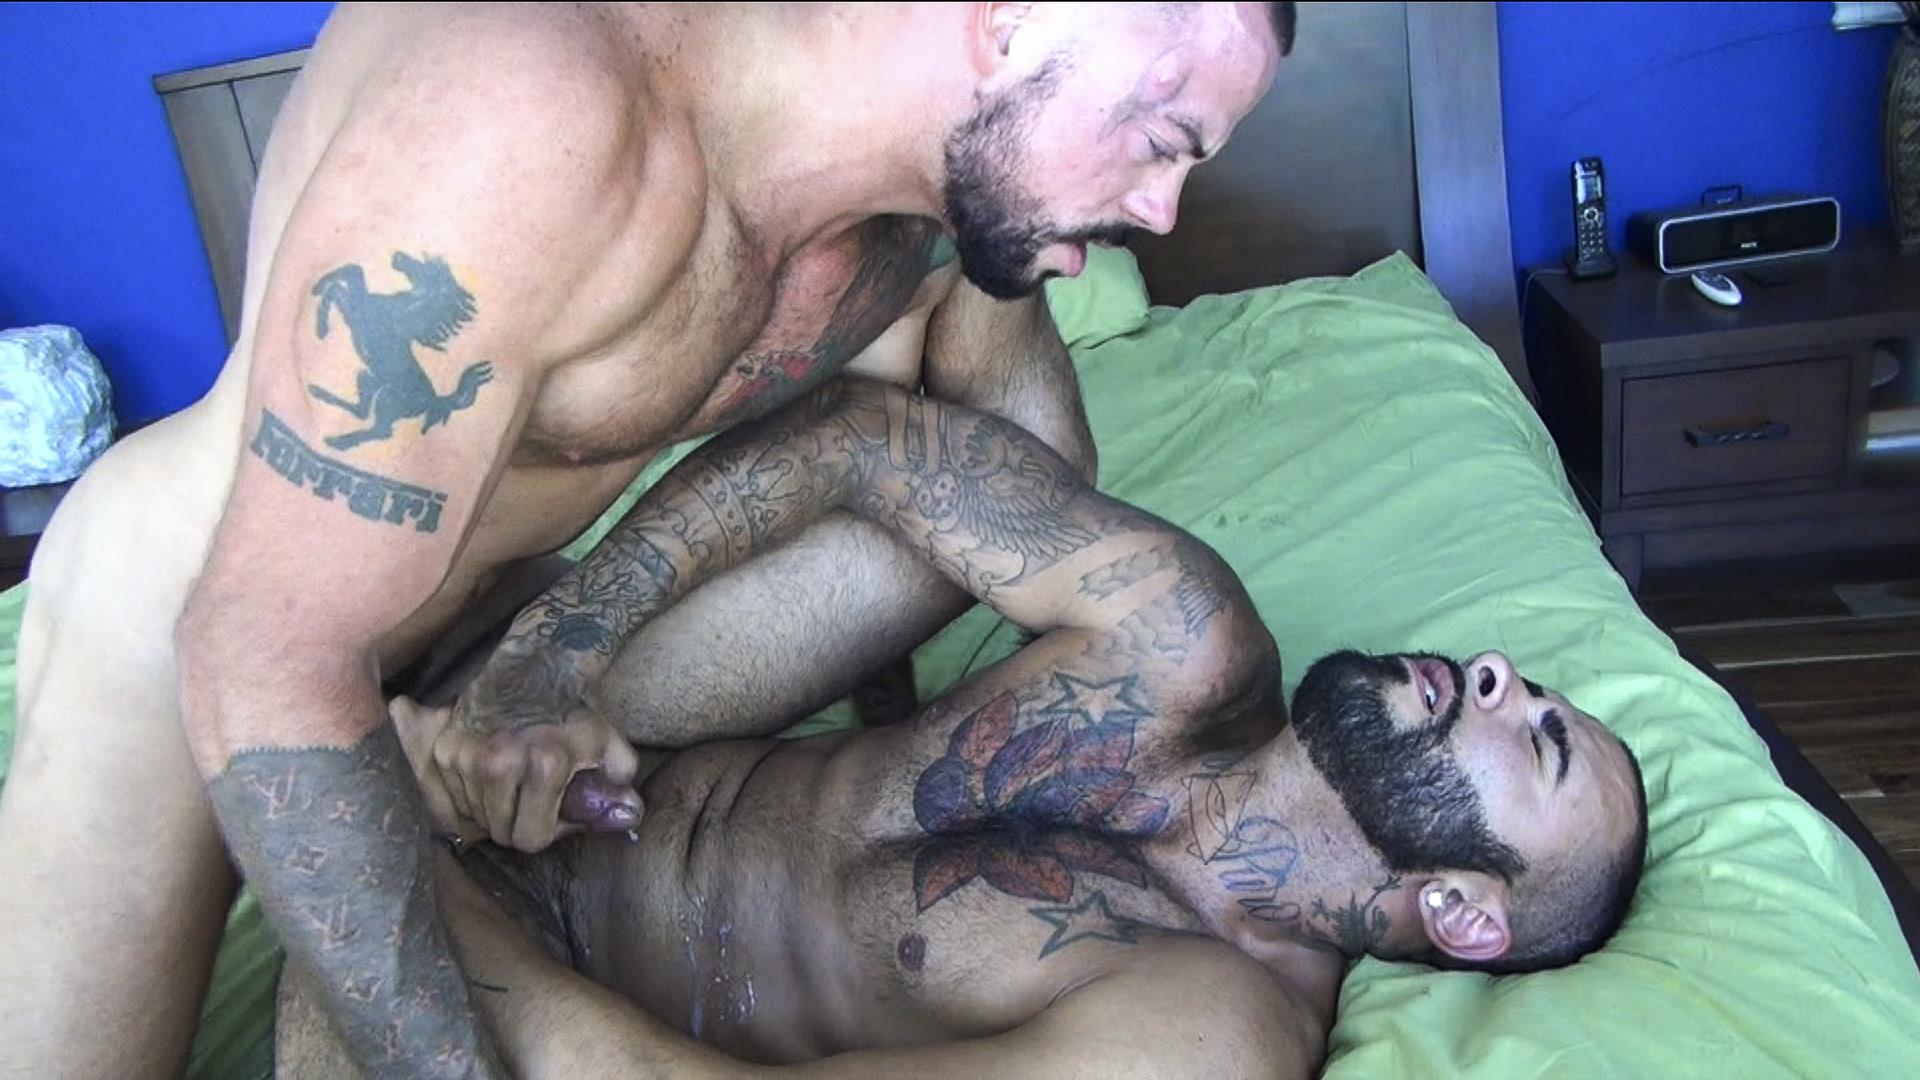 Raw-Fuck-Club-Rikk-York-and-Sean-Duran-Hairy-Muscle-Bareback-Amateur-Gay-Porn-2 Hairy Muscle Studs & Real Life Boyfriends Sean Duran & Rikk York Bareback